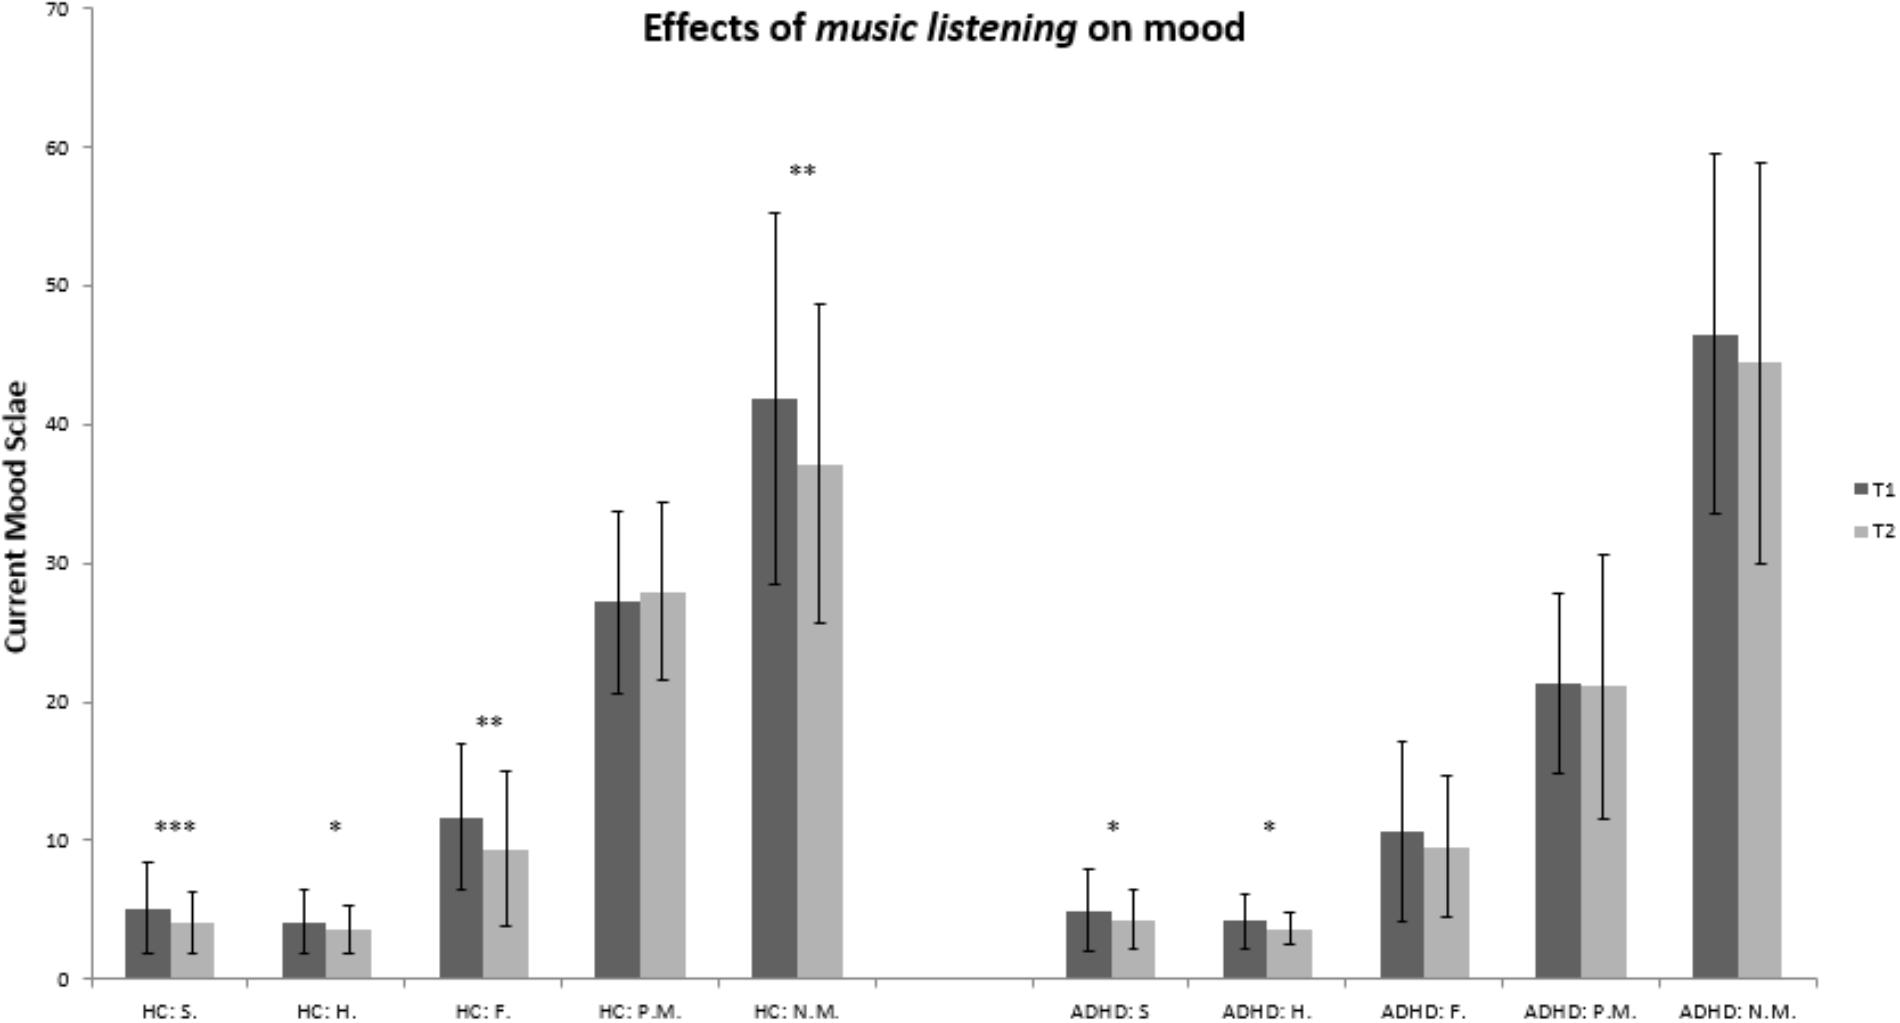 Frontiers | Listening to Mozart Improves Current Mood in Adult ADHD